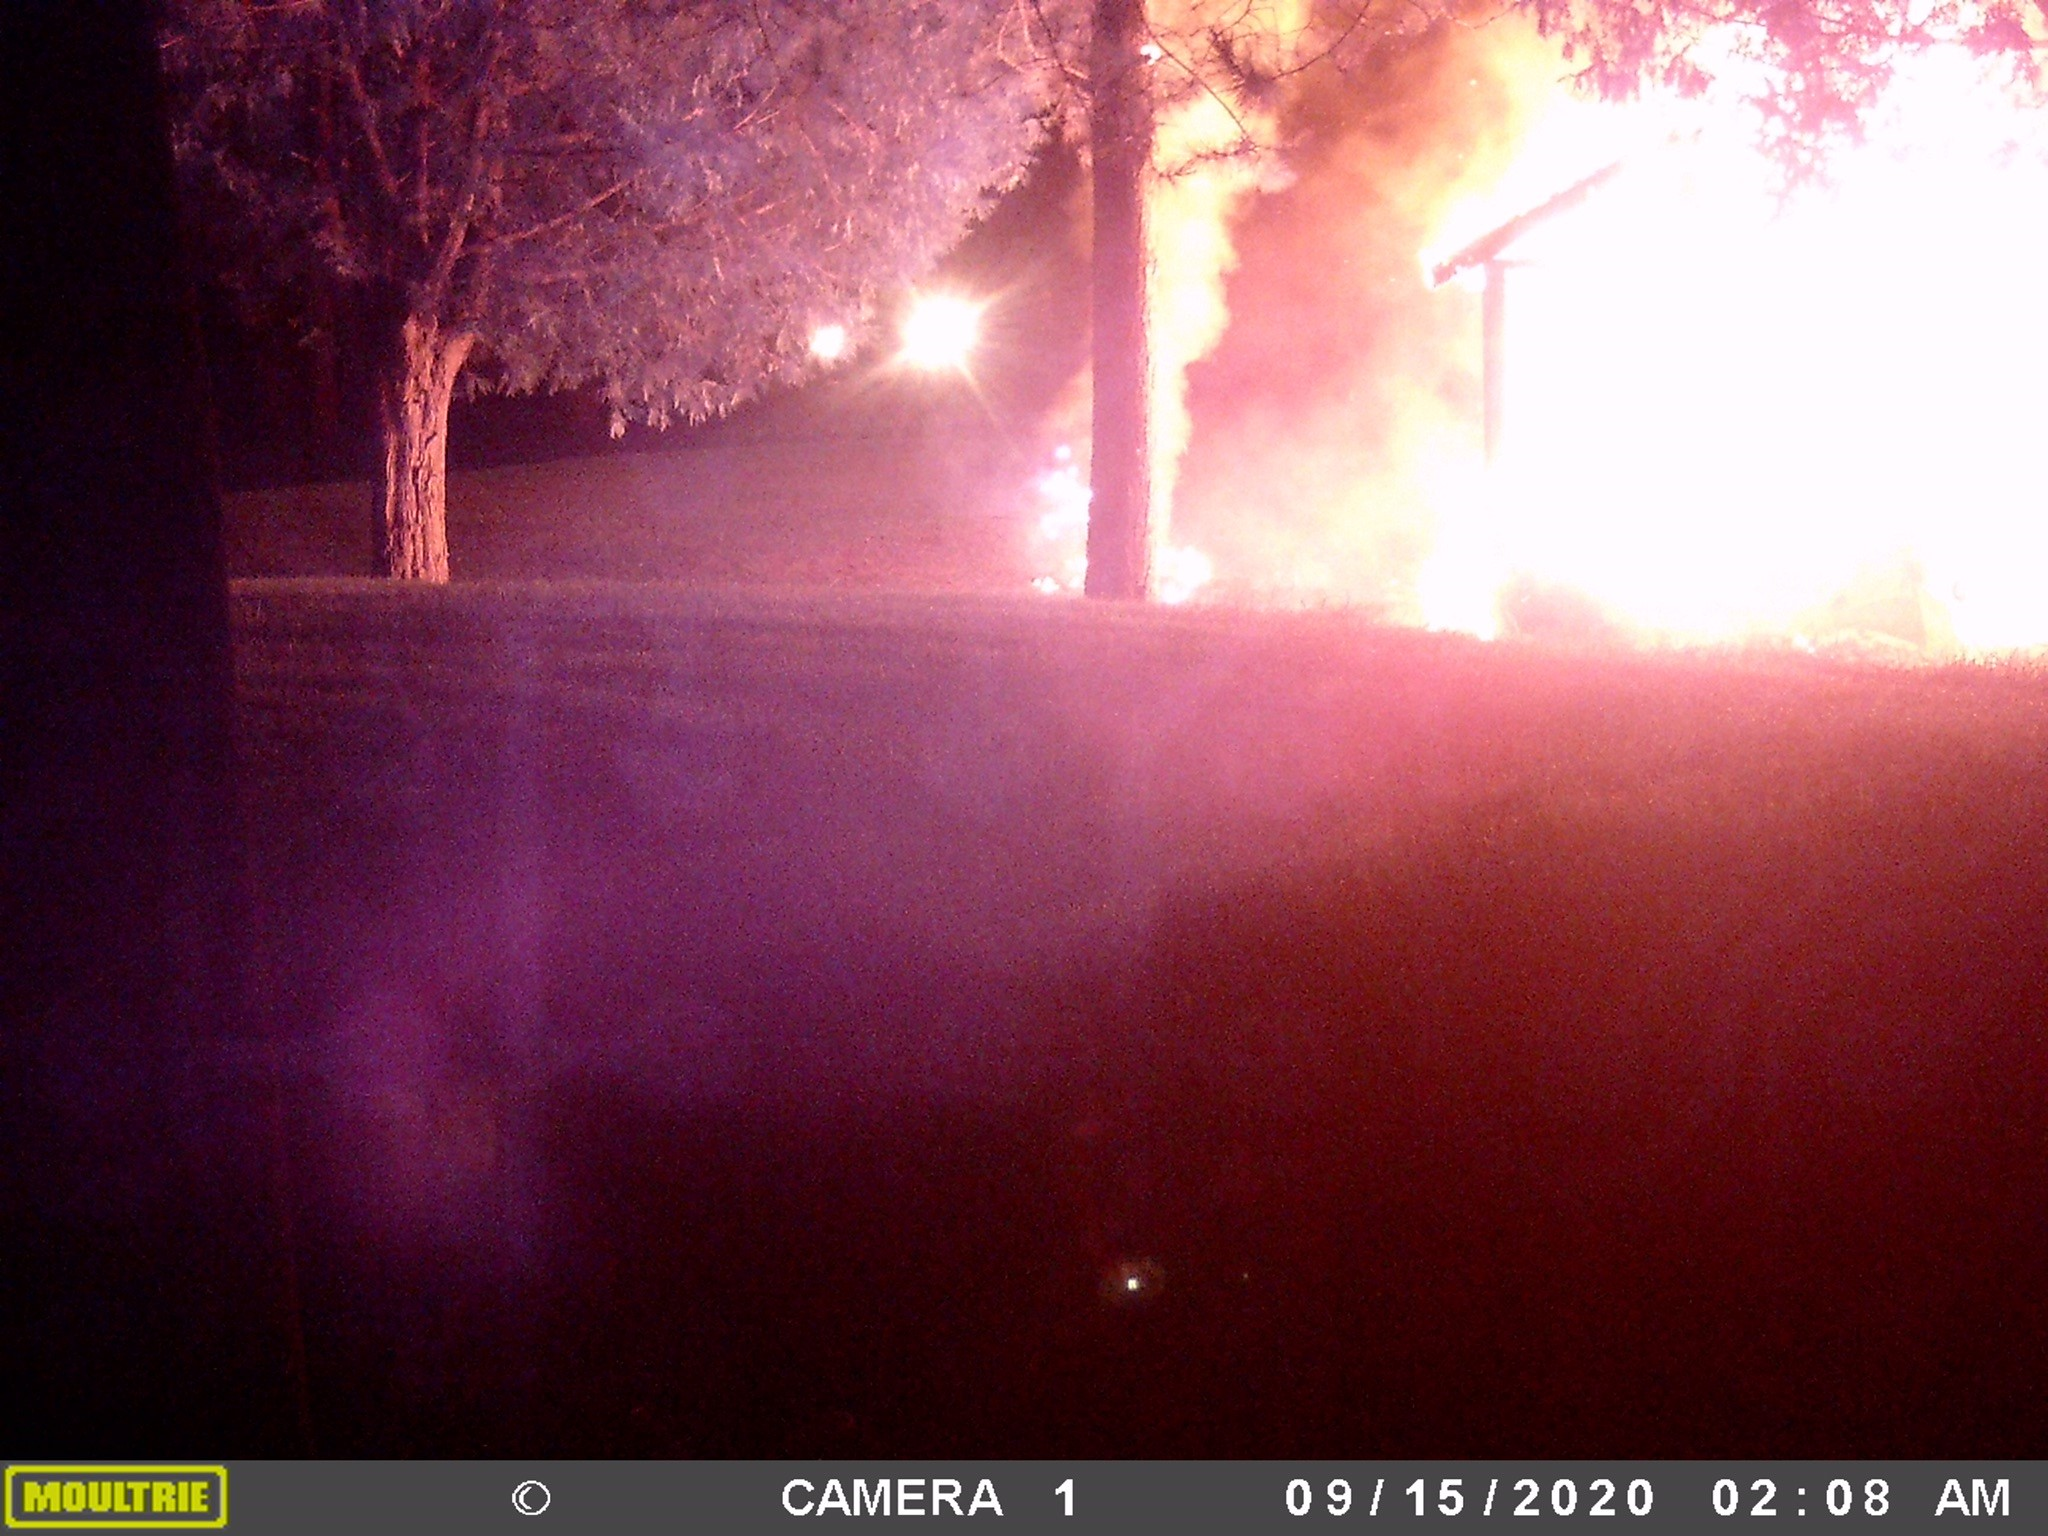 Police searching for suspects after arson incident in Ramara Township